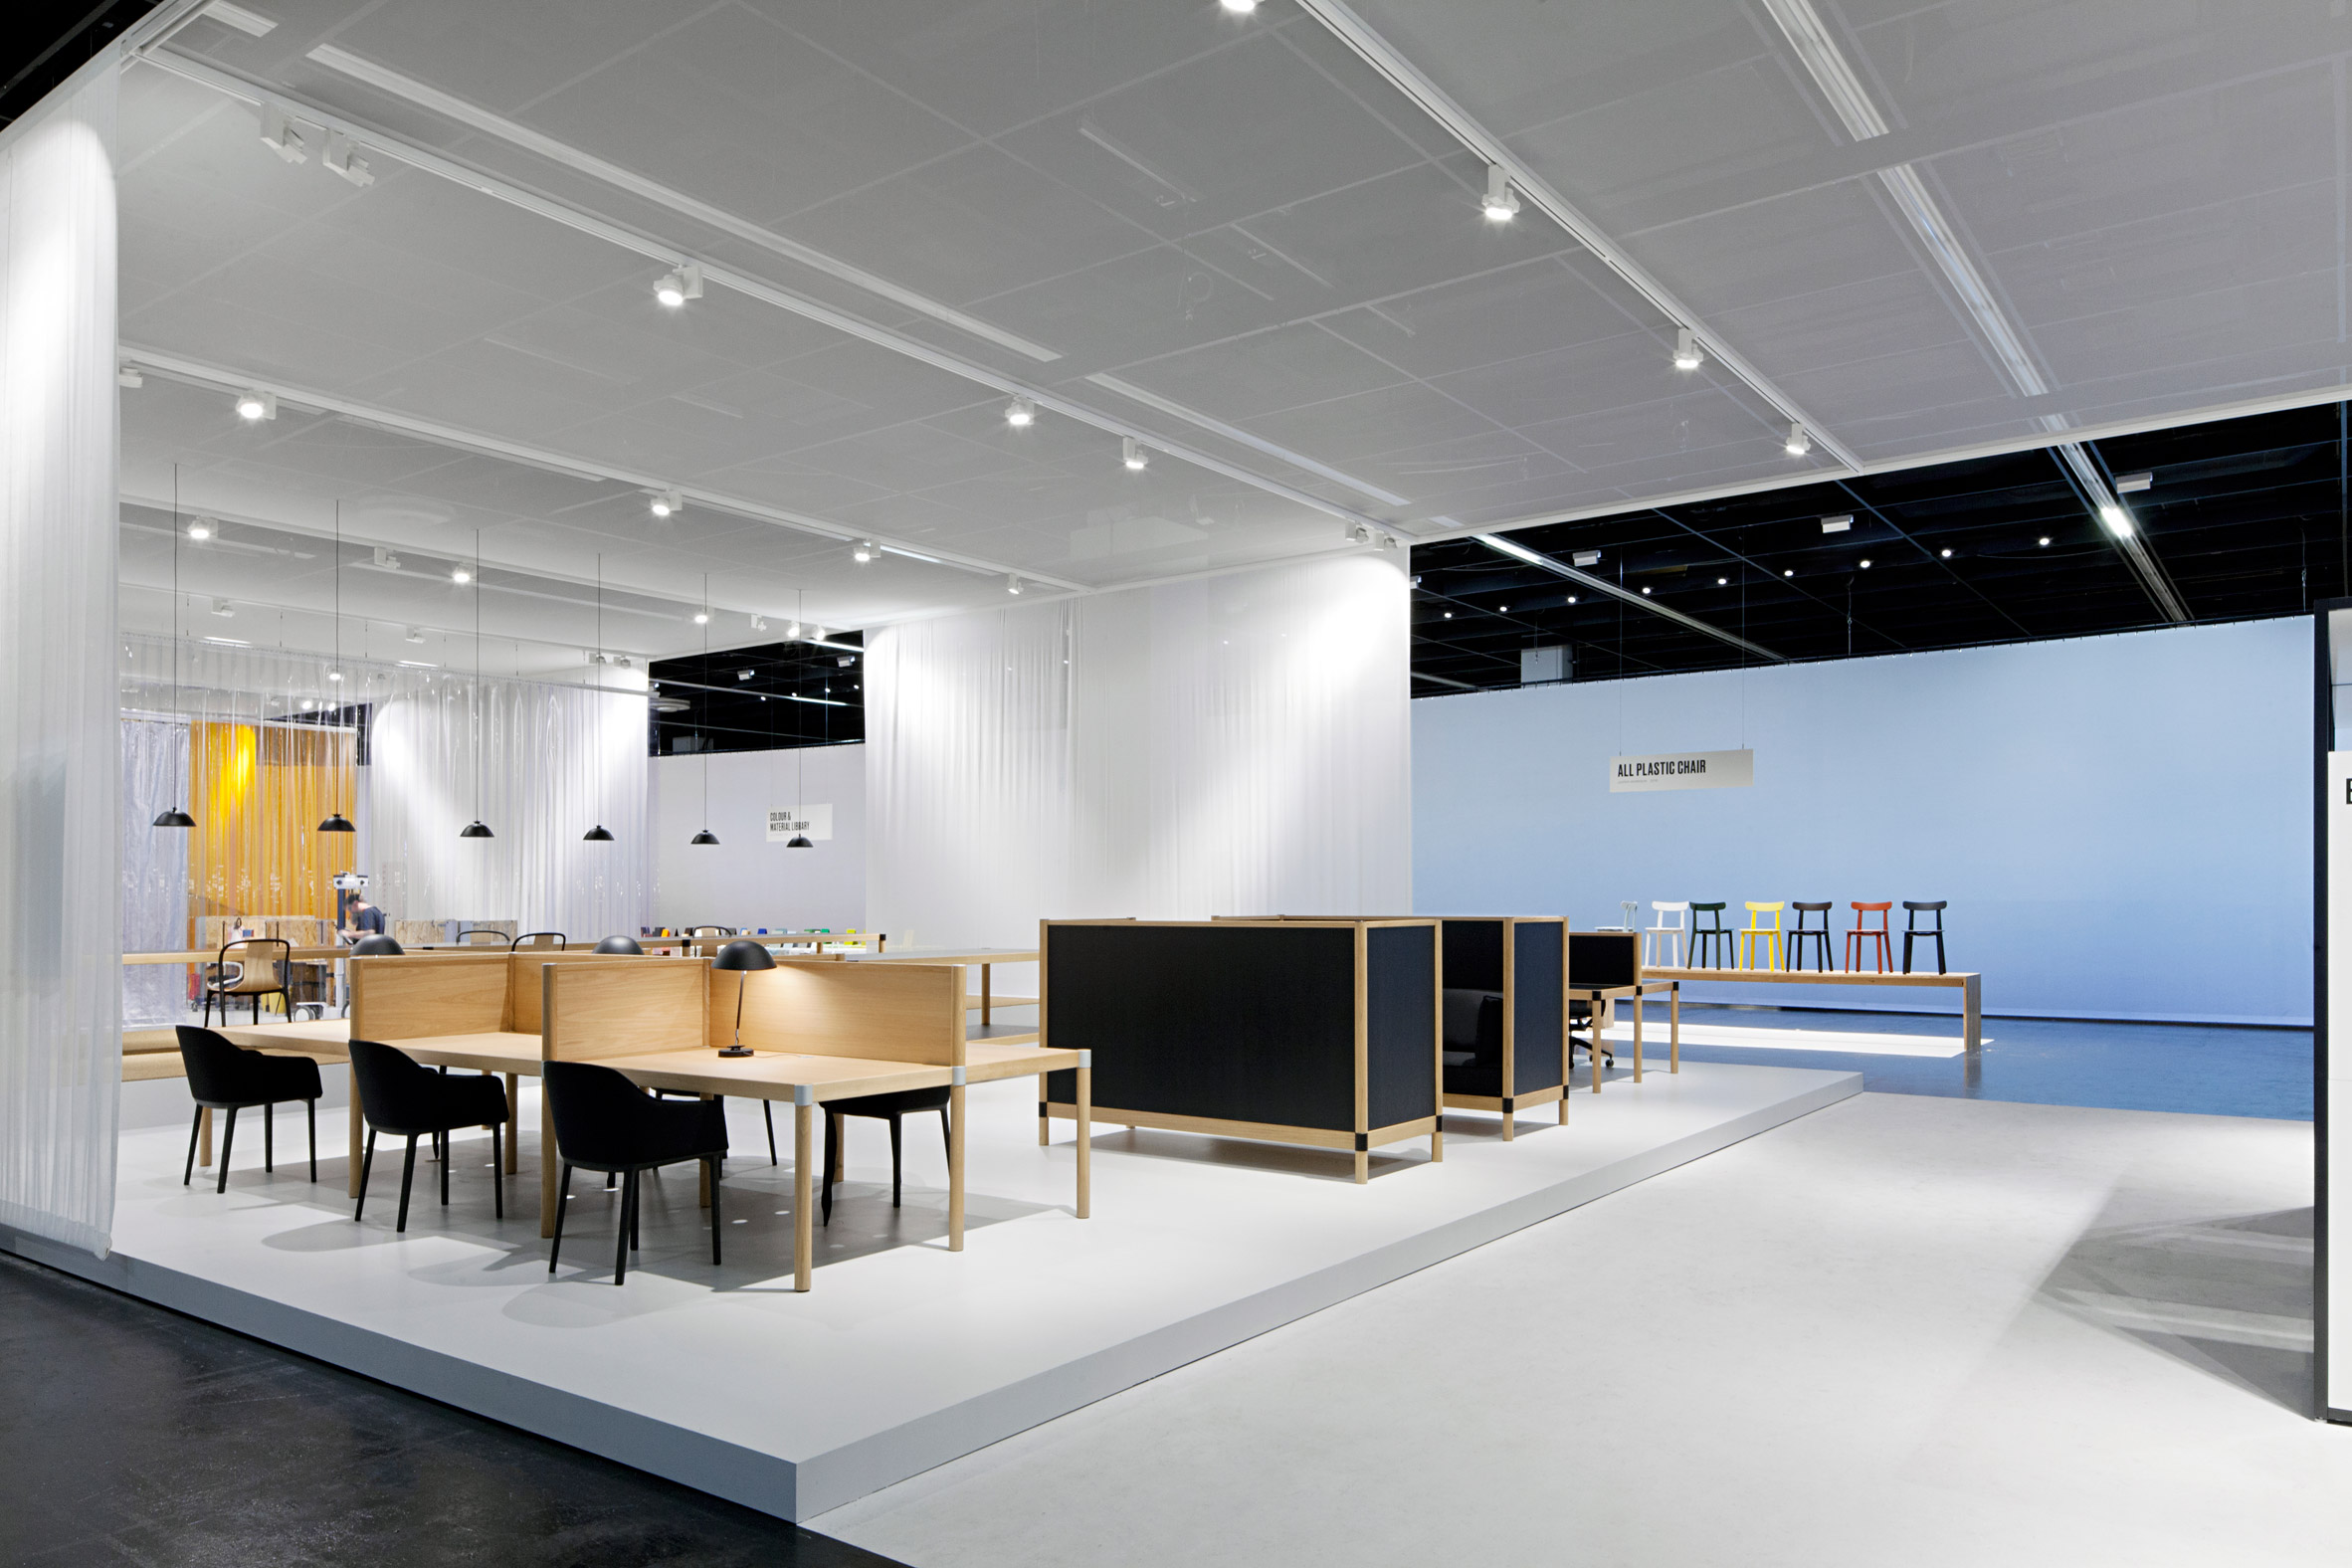 Expo Stands Interior Office 2016 : Pernilla ohrstedt explores contemporary office spaces for